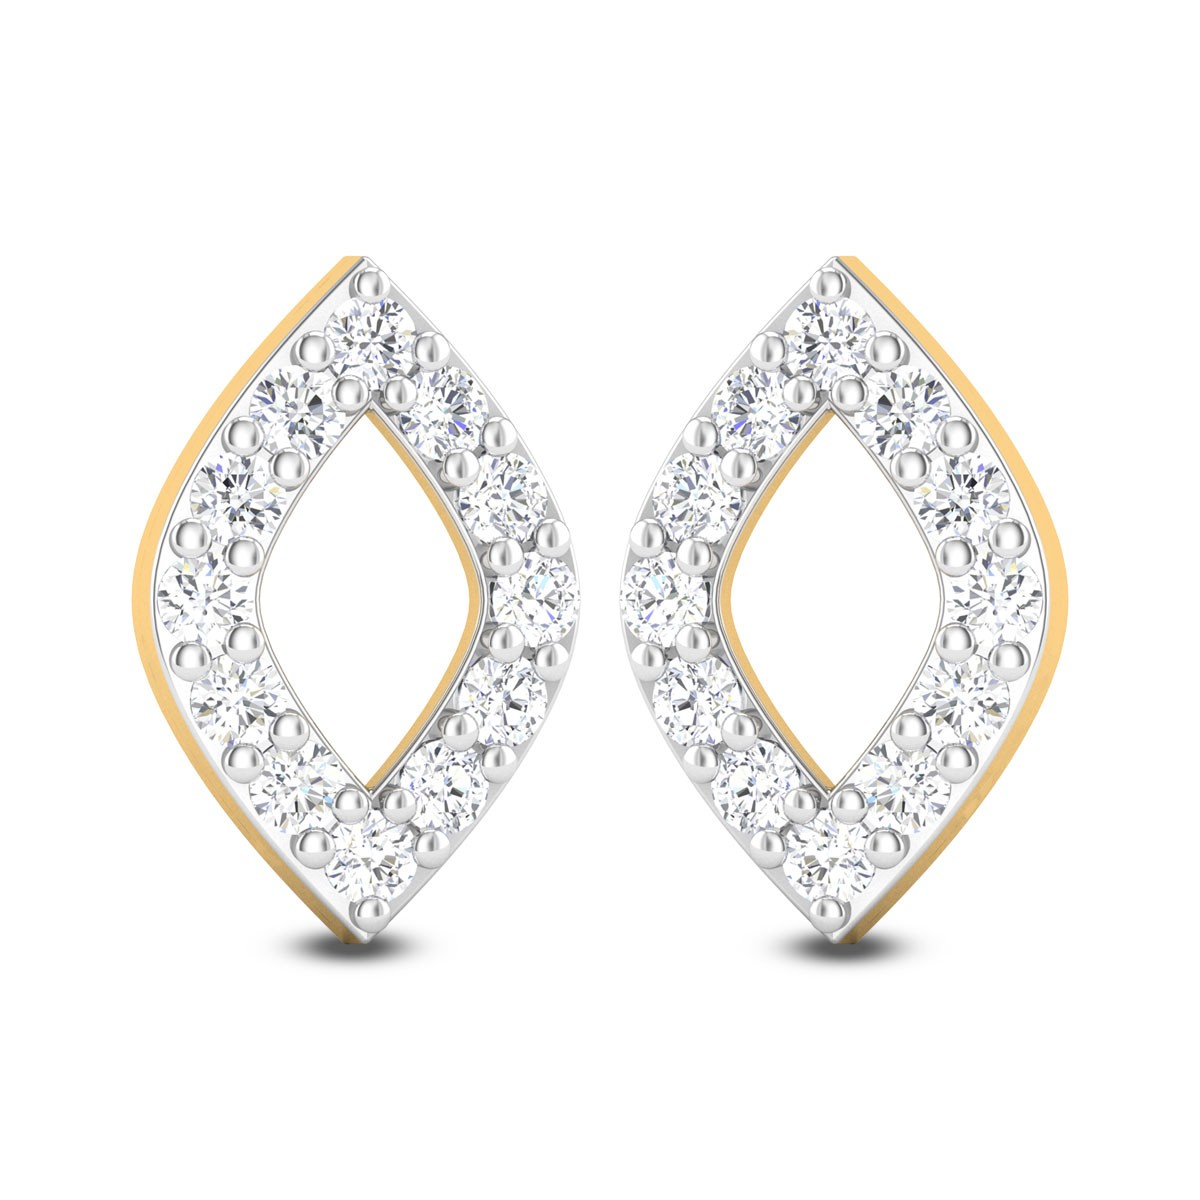 Akshainie Diamond Stud Earrings